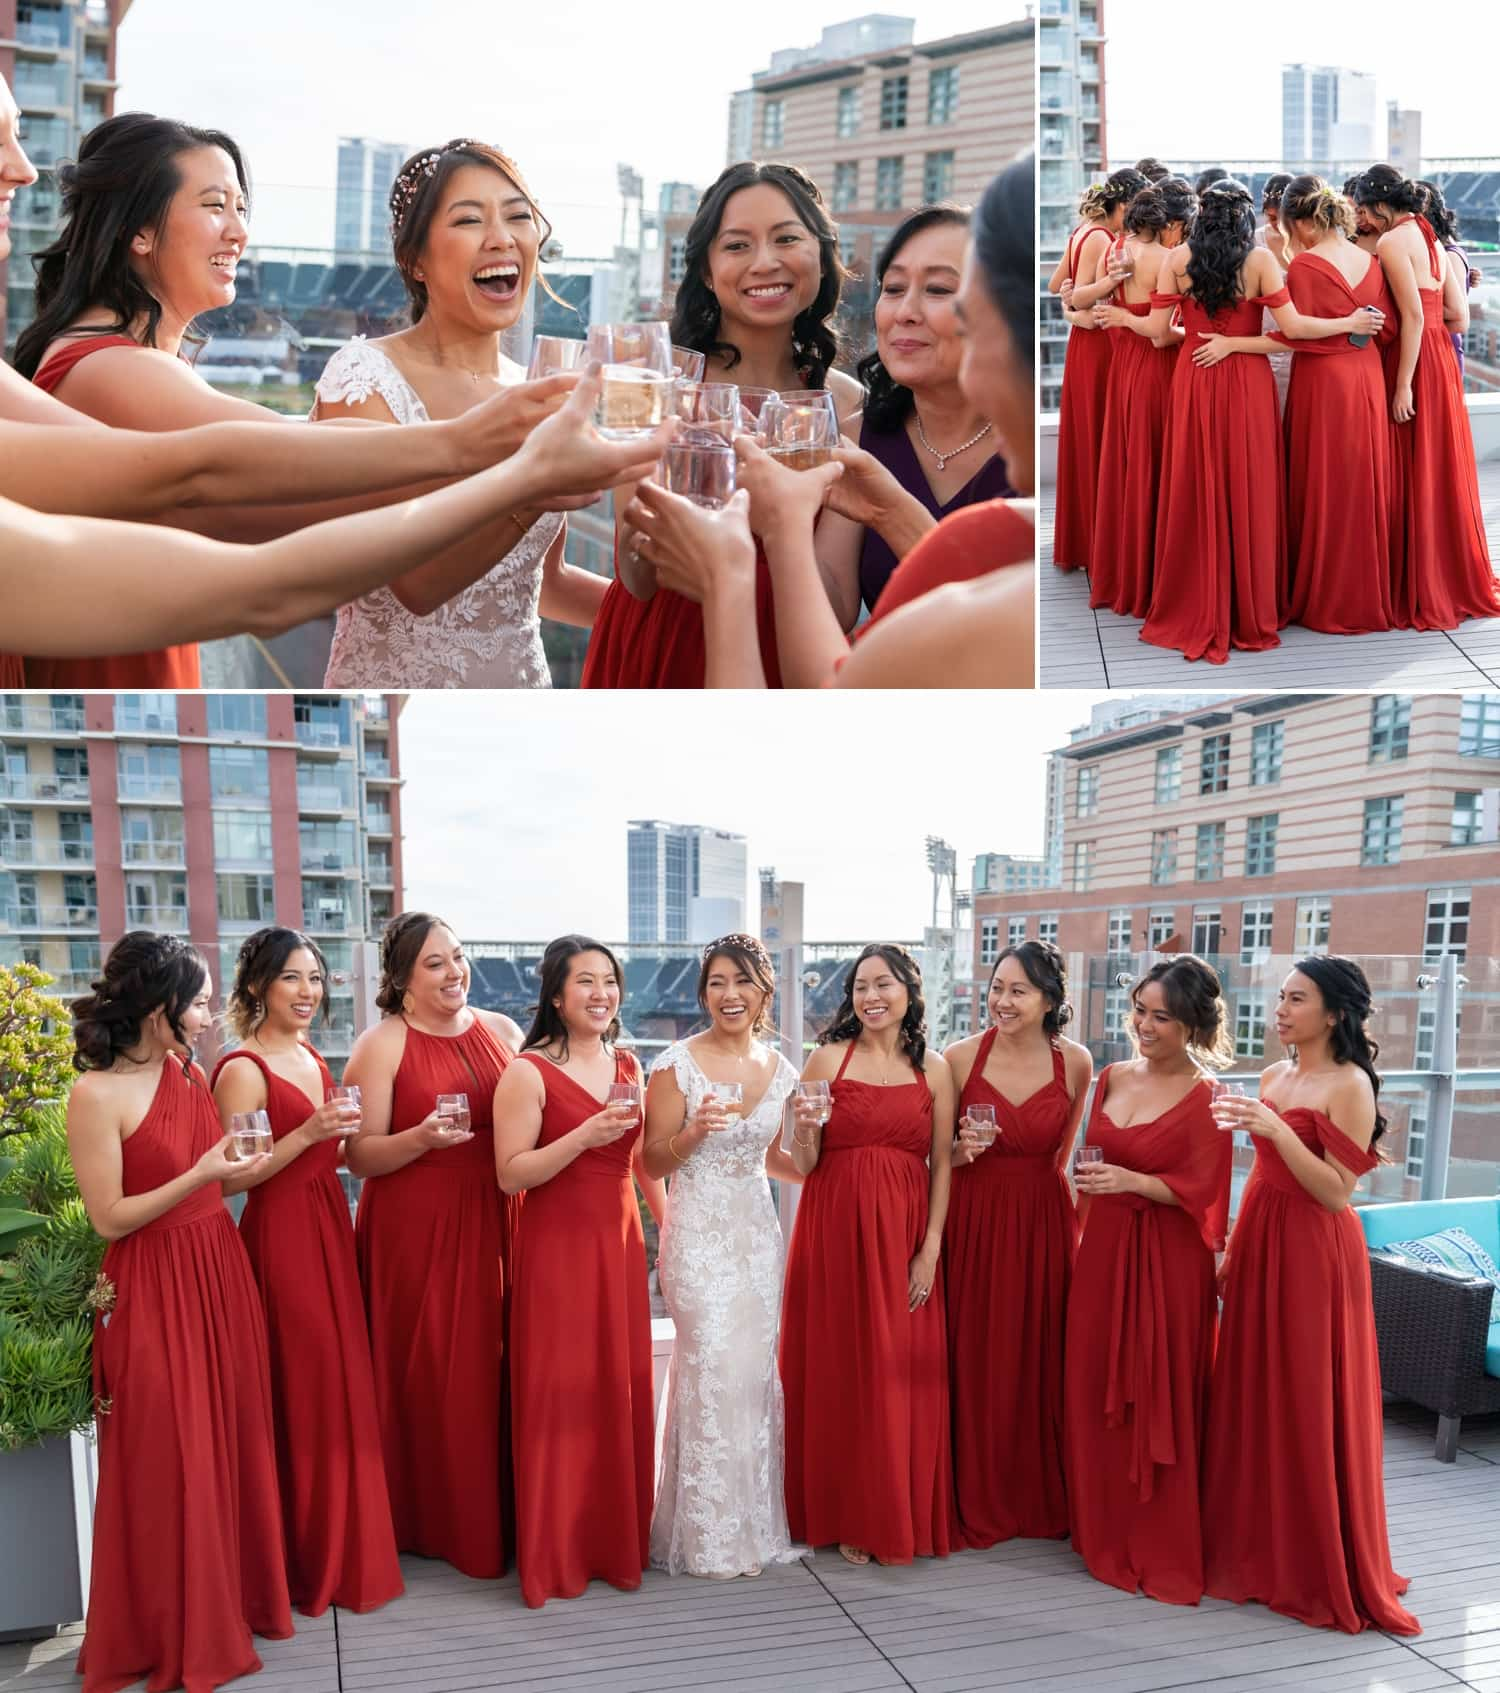 Bride and her bridesmaids on a balcony in San Diego.